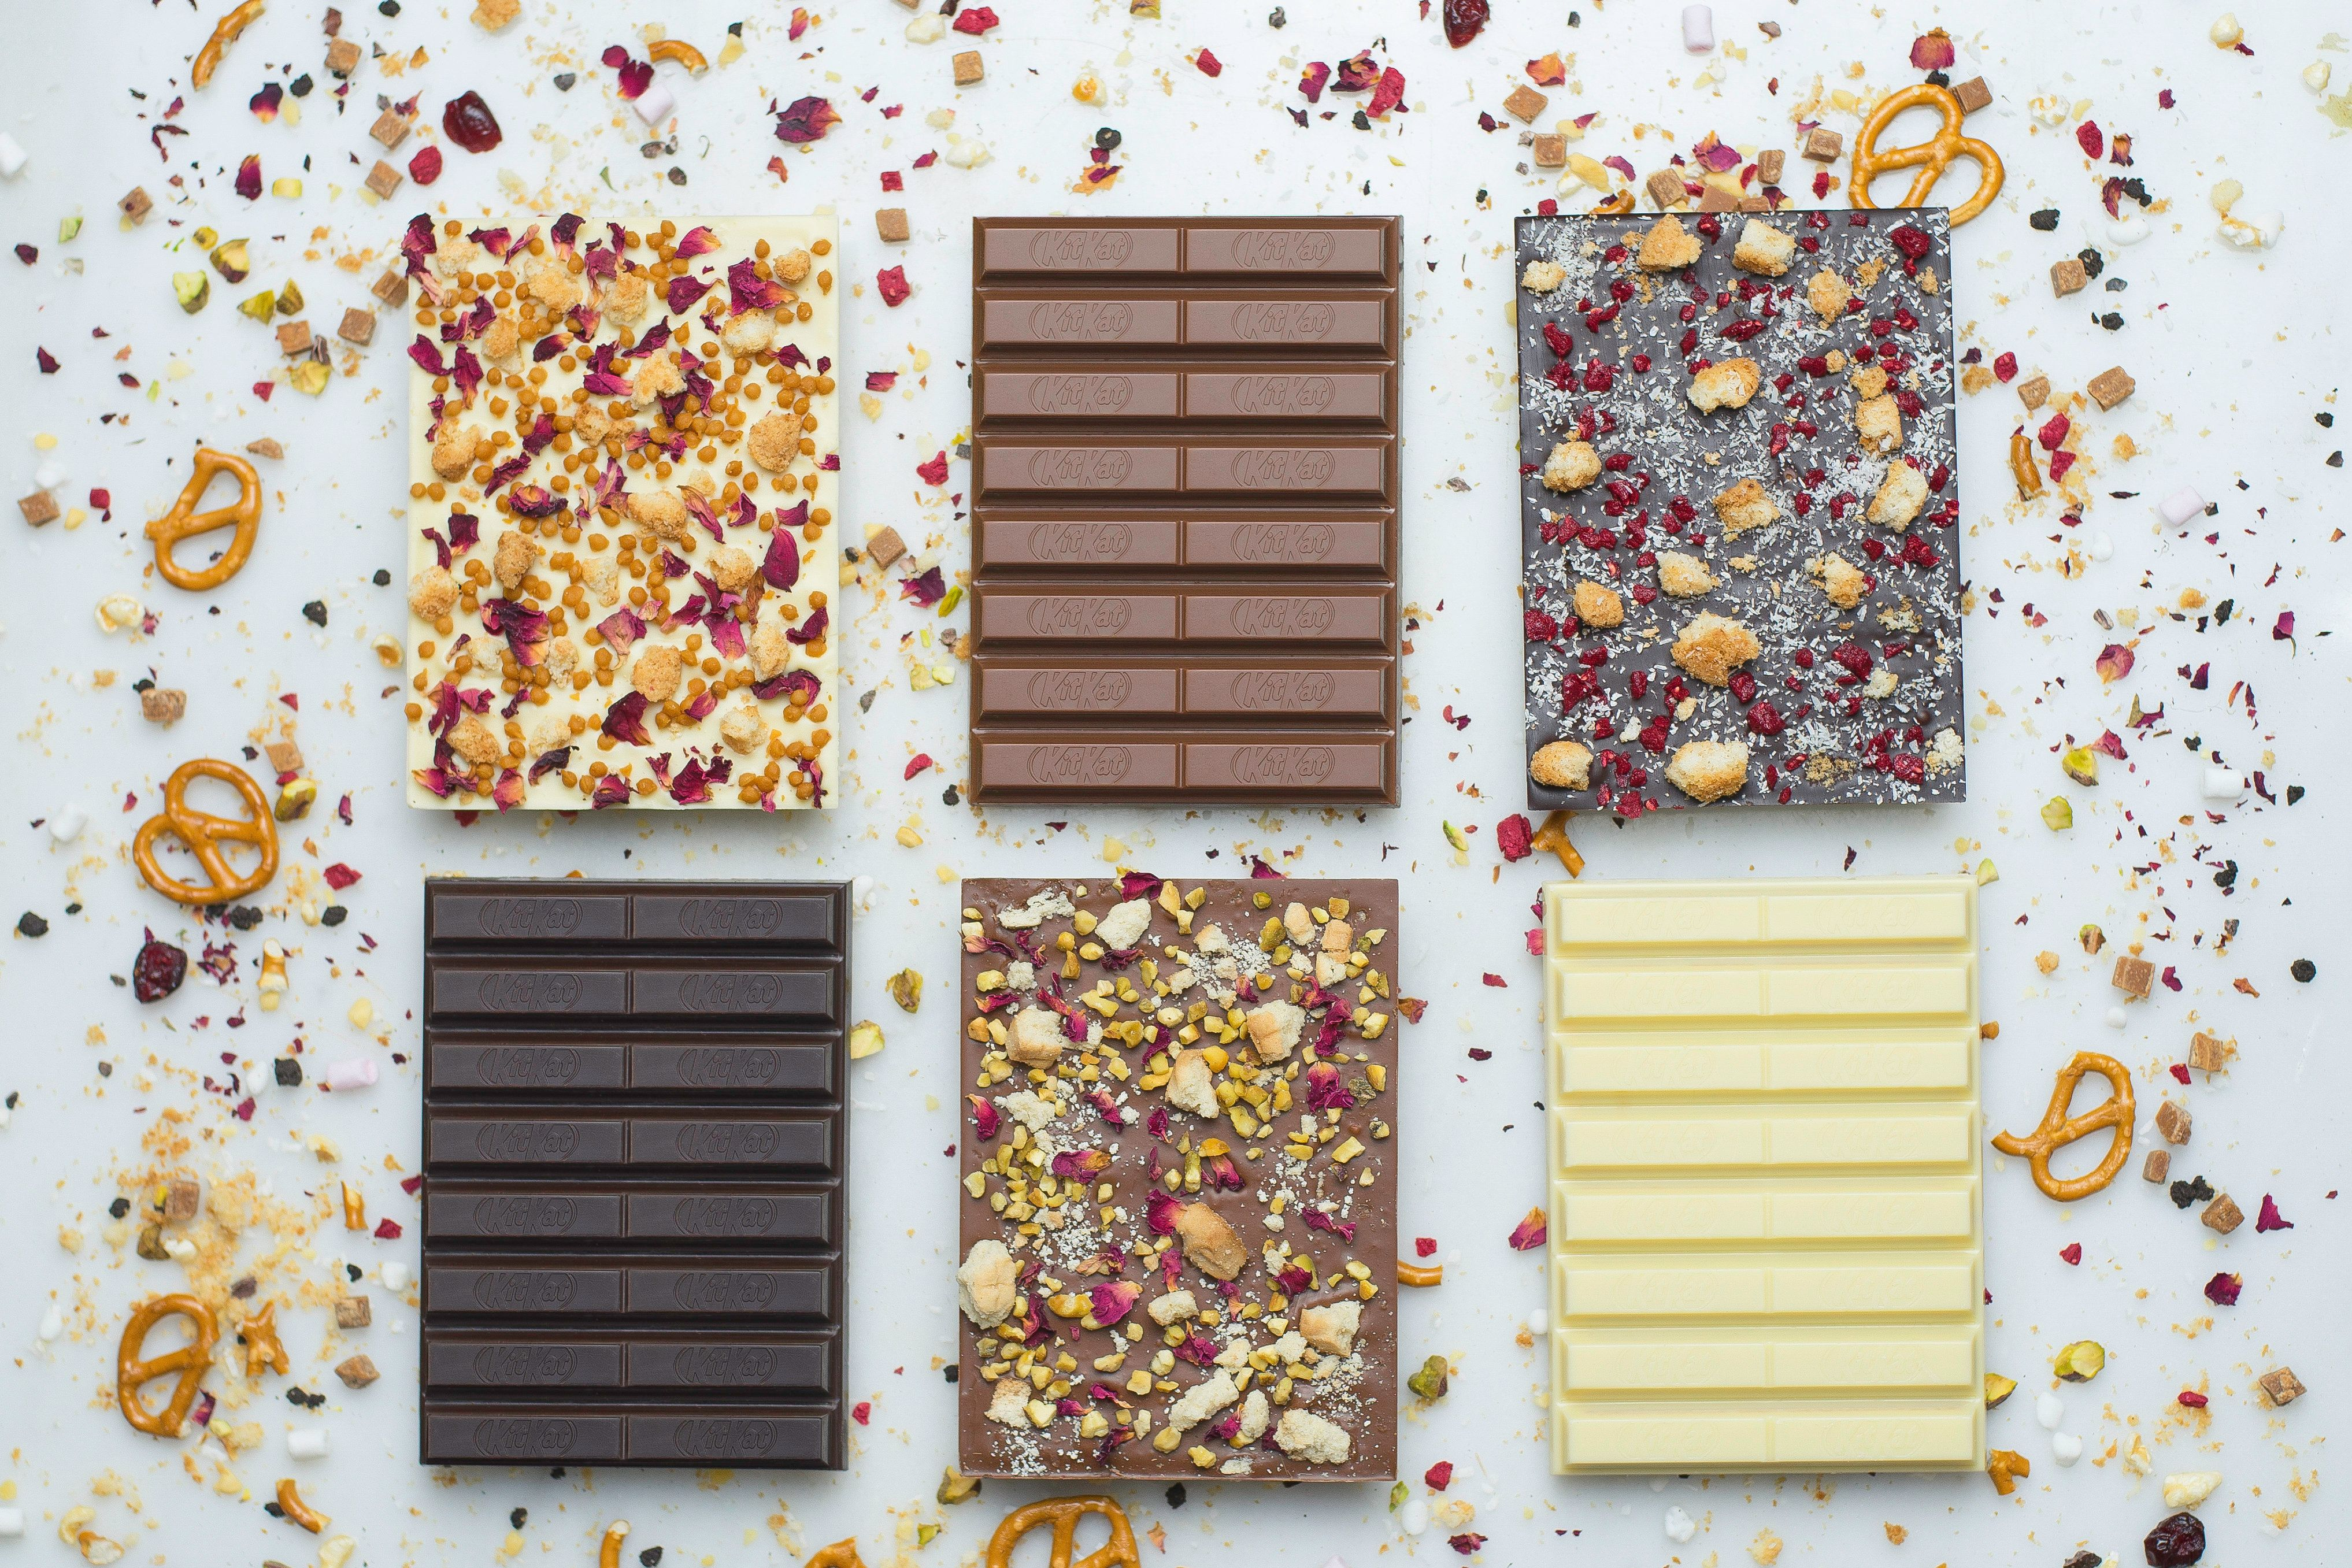 New KitKat Pop-Up Lets You Customise Chocolate To Your Heart's